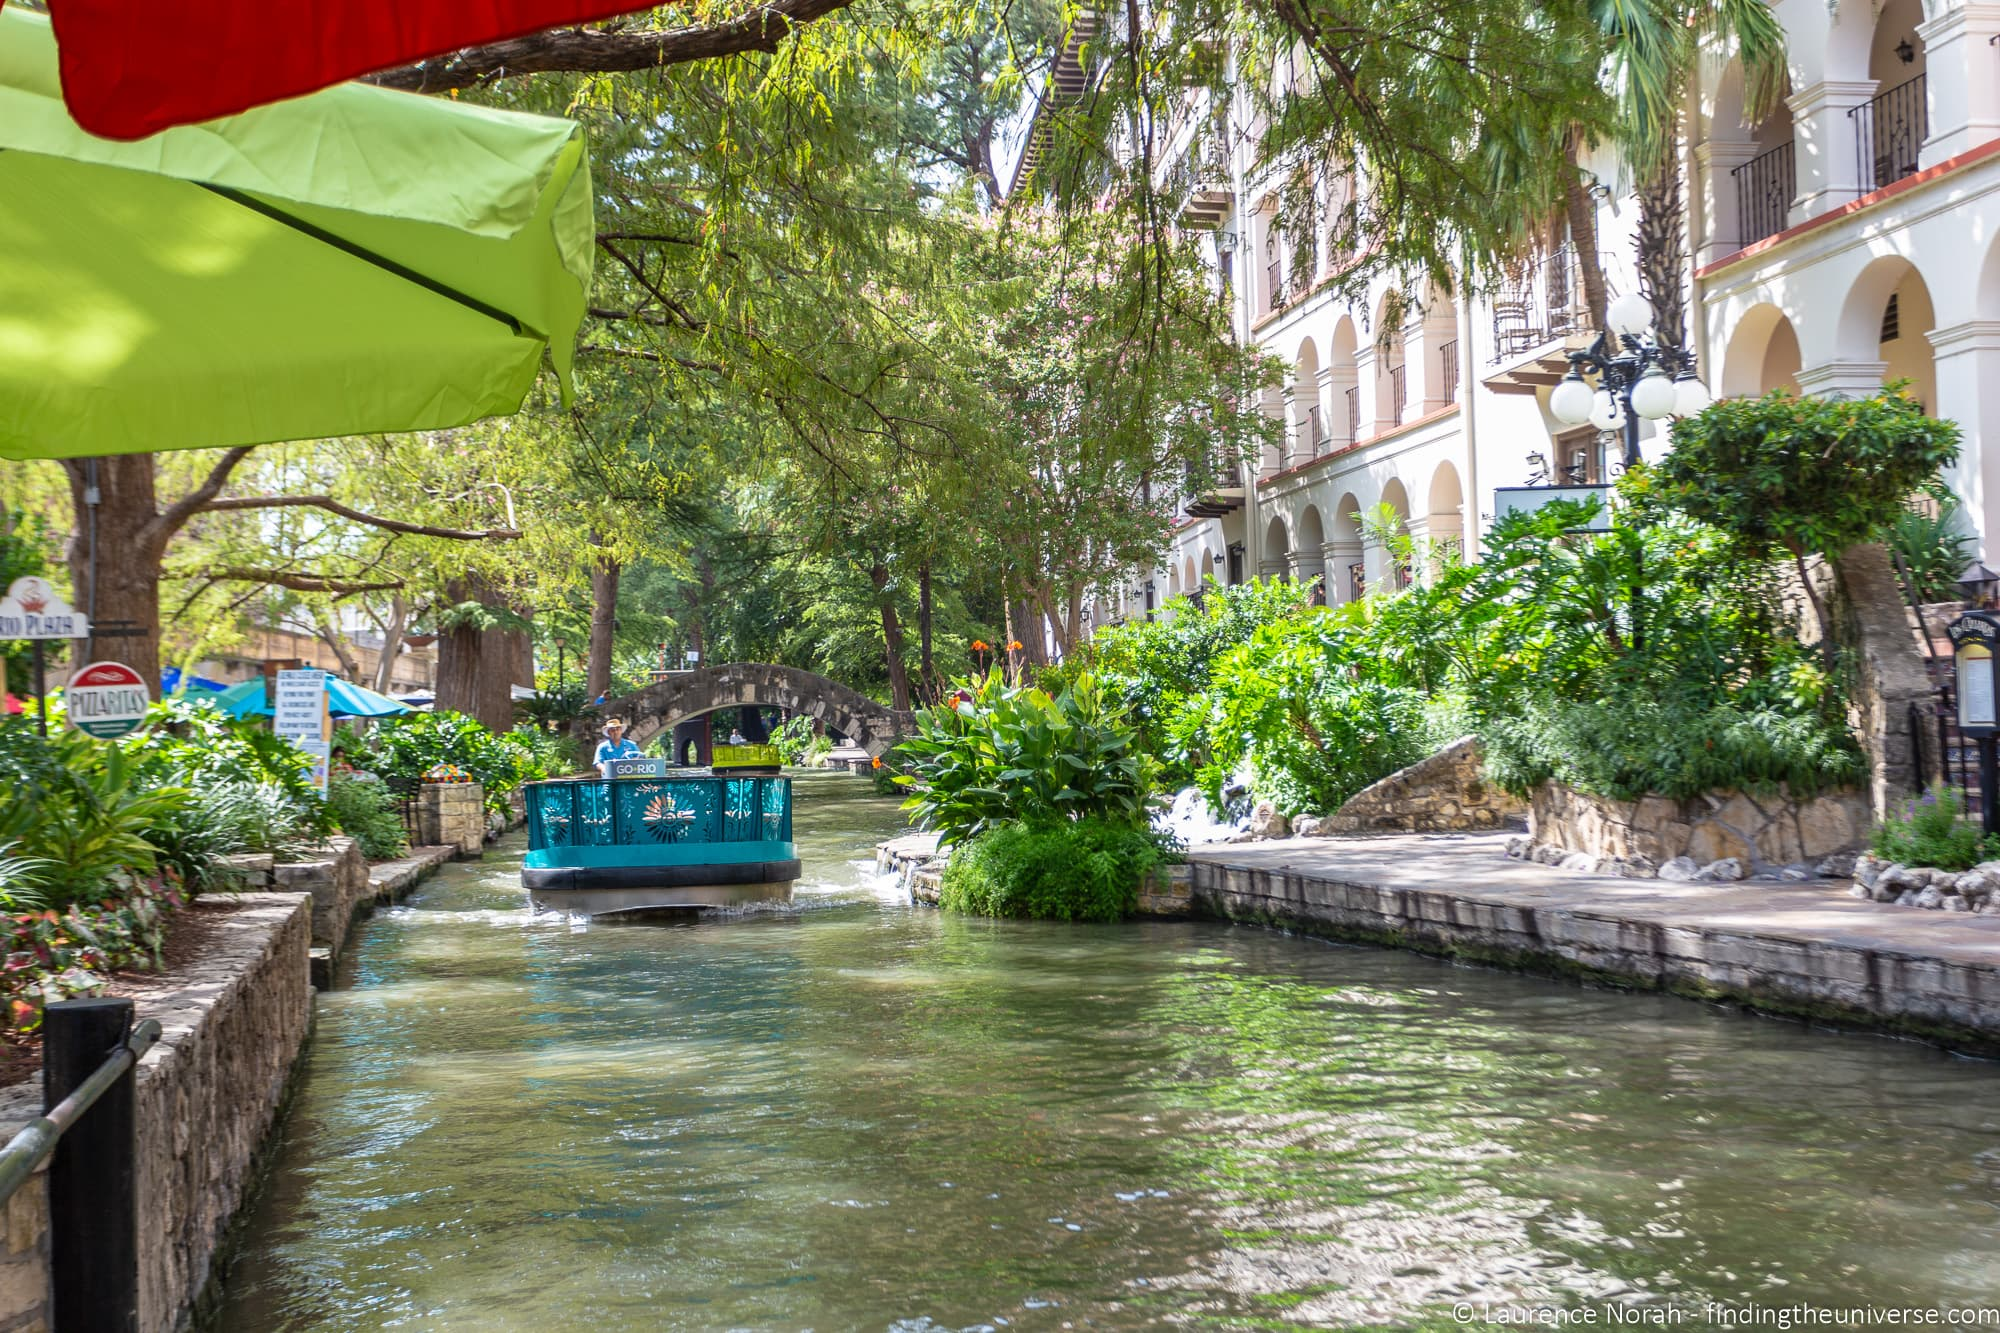 Guide to Visiting The San Antonio River Walk - Finding the ... on san antonio restaurant map, san antonio downtown hotels map, phoenix convention center hotels map, city of san antonio map, houston hotels map, san antonio drury plaza hotel, san antonio medical center map, san antonio river map, san antonio parking map, grand hyatt san antonio map, corpus christi hotels map, alamo san antonio map, san antonio airport map, san antonio visitors map, colorado hotels map, port aransas hotels map, alamodome san antonio map, san antonio tx at night, san antonio riverwalk extension map, san antonio bay aerial map,